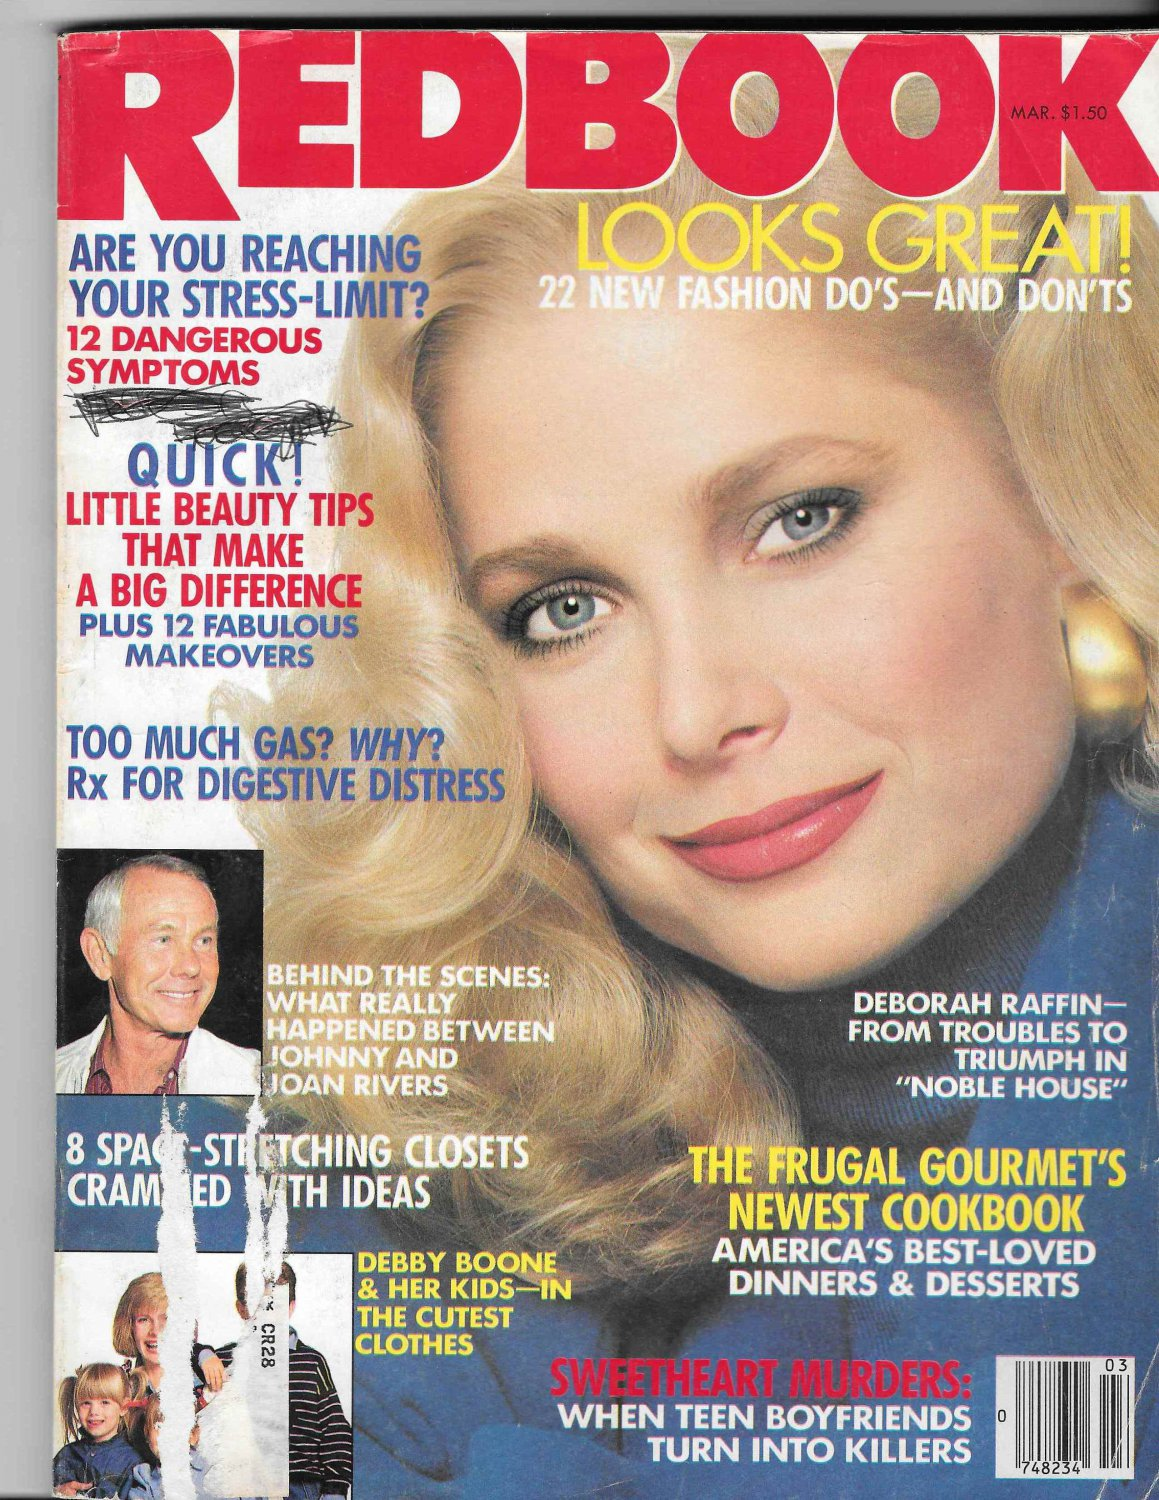 Redbook Magazine - March 1988 - Deborah Raffin